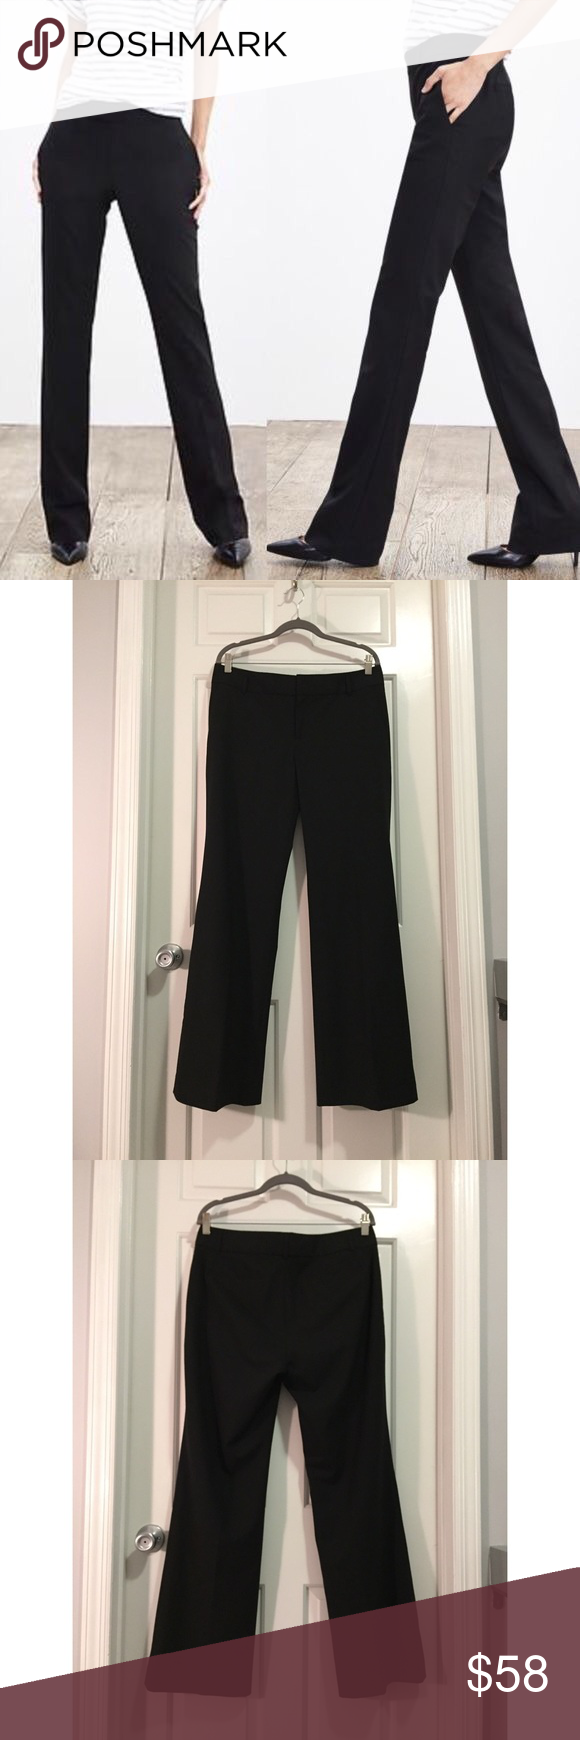 """🏴Friday Sale! Banana Republic Martin Wool Pants This pair of Banana Republic Martin fit wool pants is beautifully made and so flattering. Fully lined in 95% wool with 5% spandex. Measurements lying flat: waist 18"""", hip 21"""", inseam 32"""". Please note that the cover photo is for styling purposes only; the pants for sale are shown in picture #2, 3 and 4. In excellent condition with no holes, stains or tears. I don't believe I ever wore these since all 4 pockets are still sewn shut. Please ask…"""